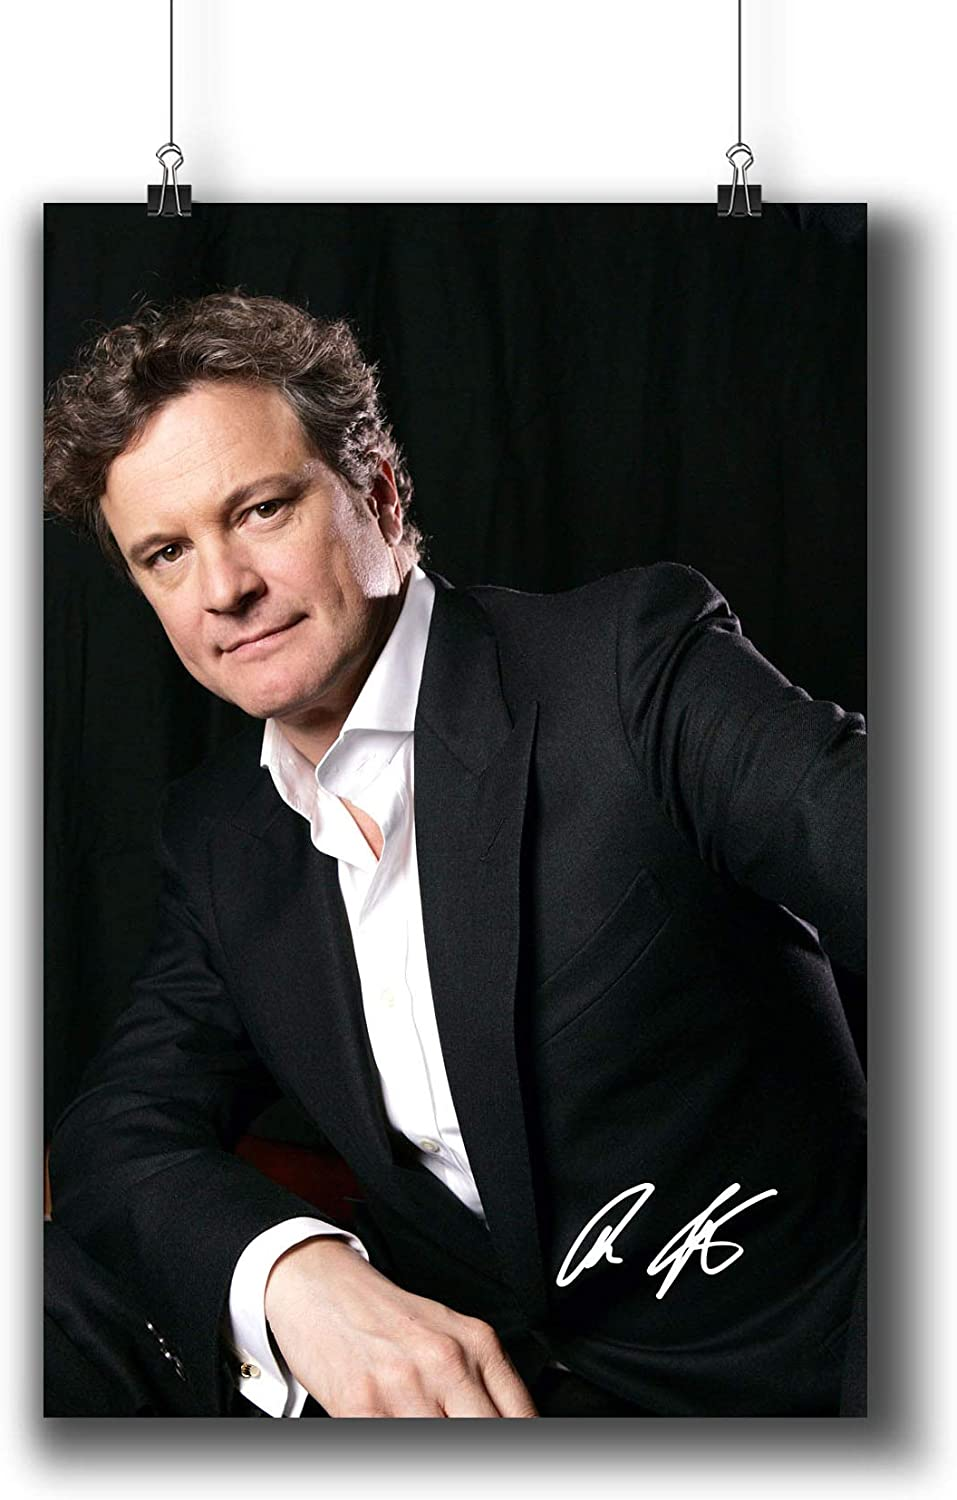 Colin Firth Actor Movie Photo Poster Prints 006-004 Reprint Signed,Wall Art Decor for Dorm Bedroom Living Room (A4|8x12inch|21x29cm)